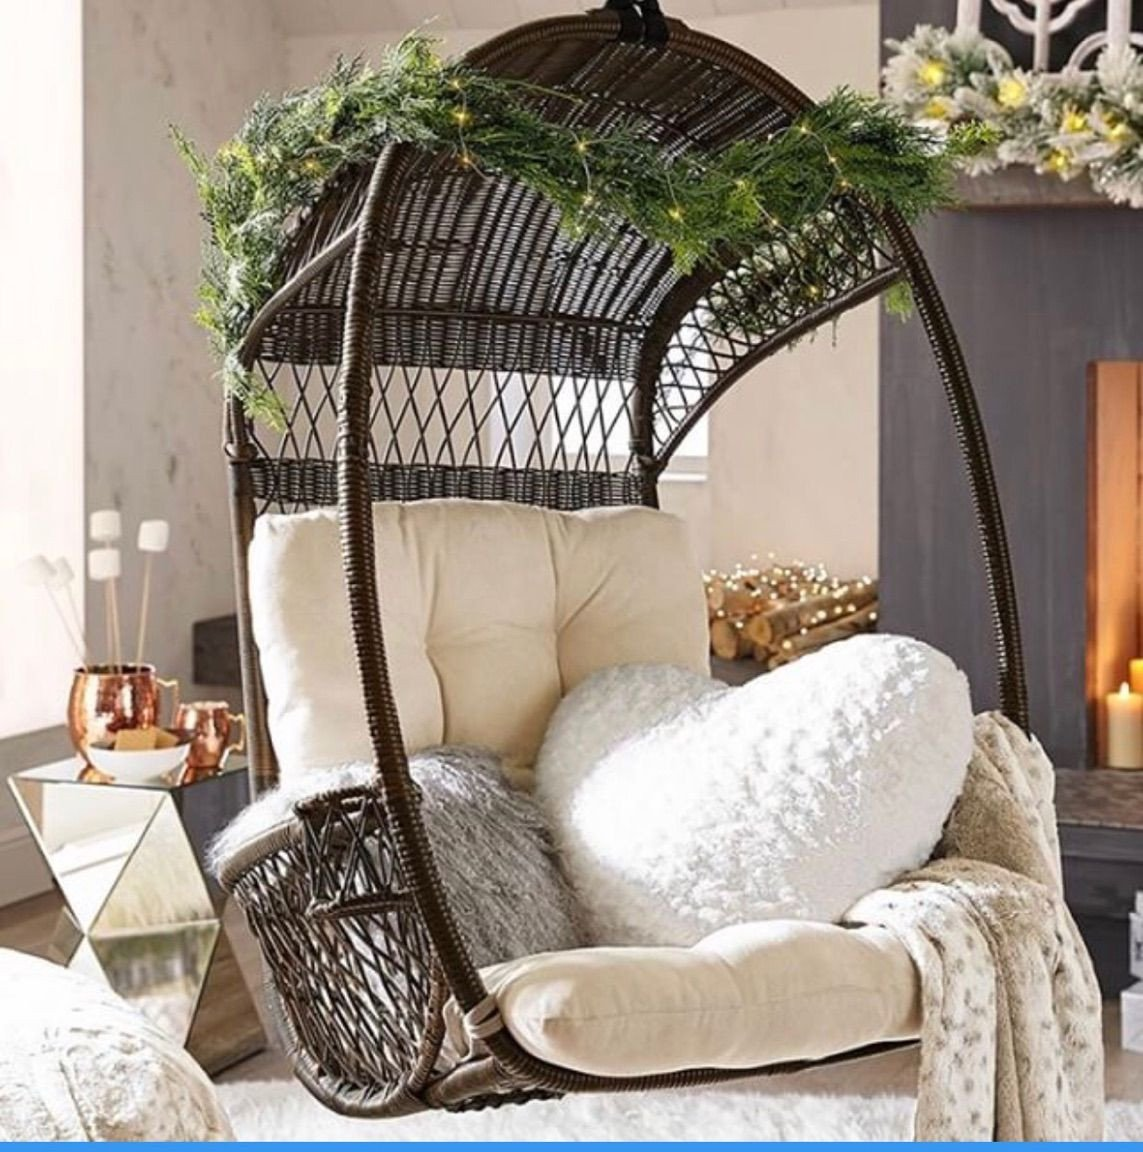 Hanging Chairs for Bedroom Beautiful Pin by Sanddollar16 On My Castle